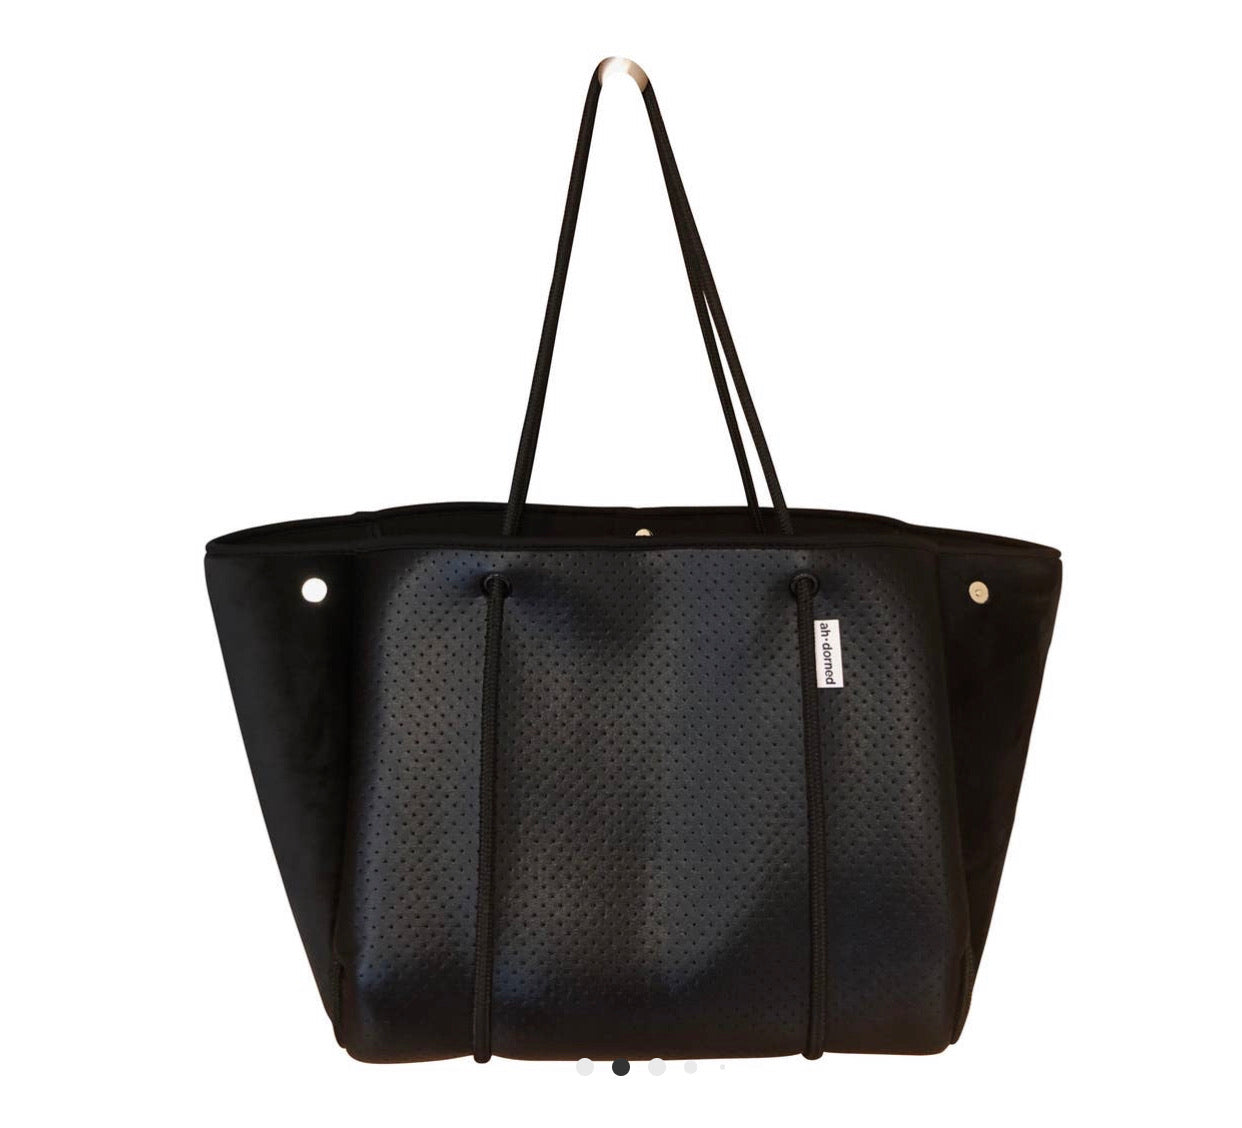 Neoprene Tote Bag with Velour Sides